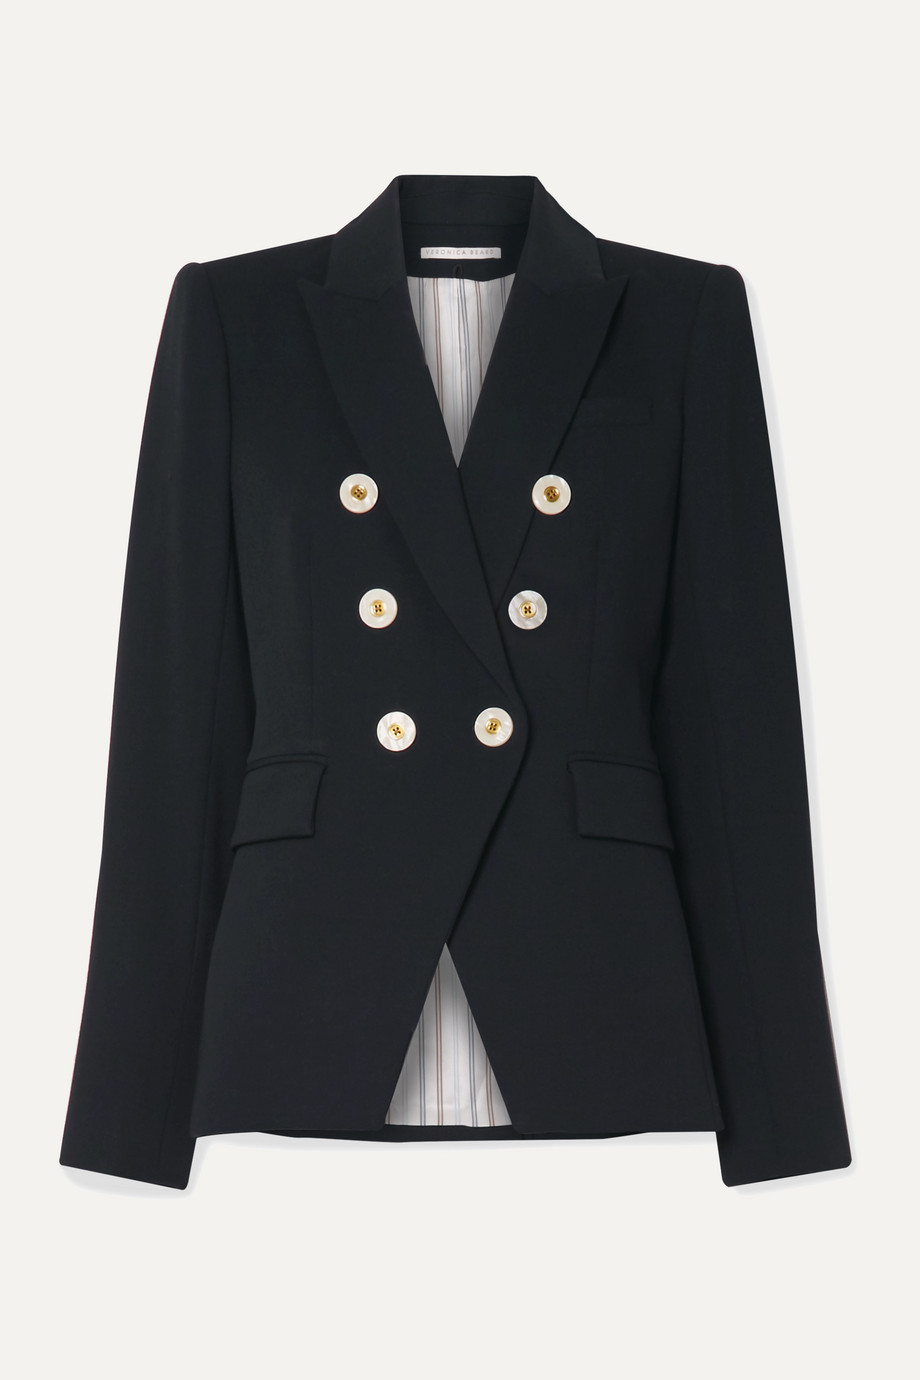 Veronica Beard Miller Dickey double-breasted crepe blazer